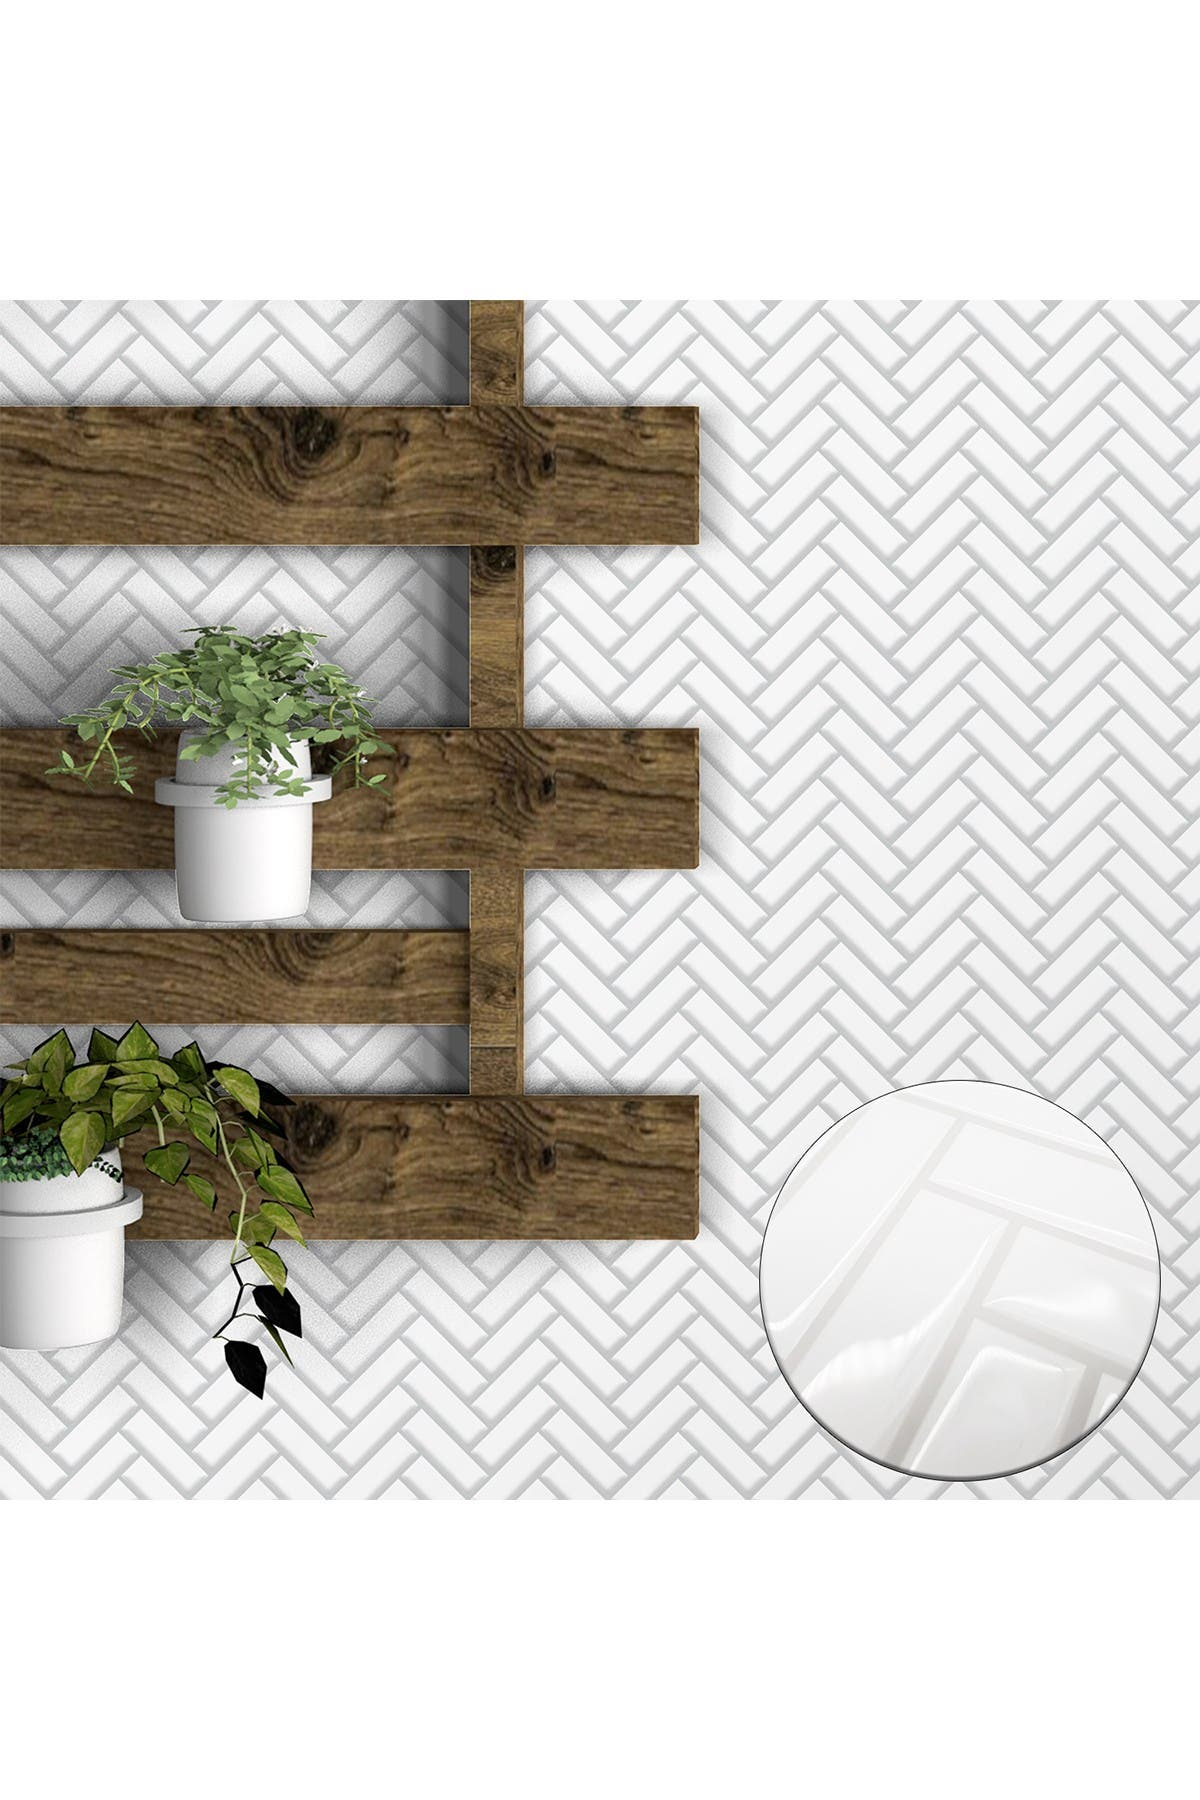 "Image of WalPlus White Herringbone Glossy 3D Sticker Tile - 28cm x 20cm (11"" x 8"") 8-Piece in a pack"